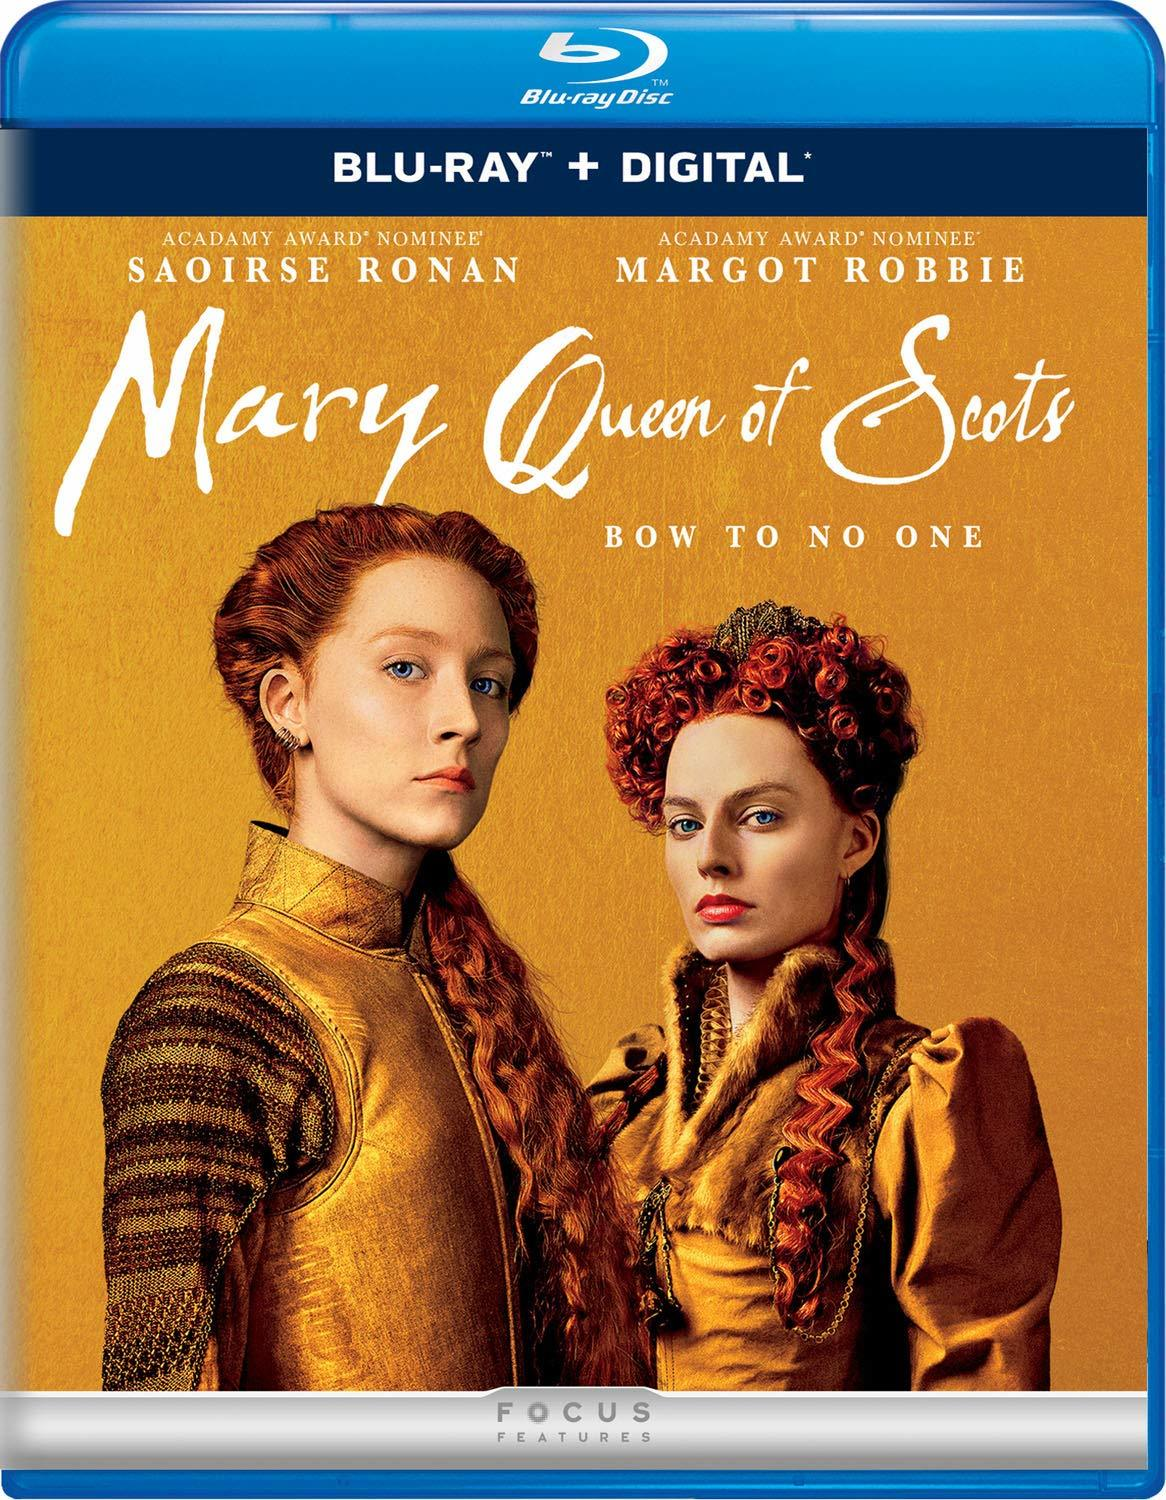 Mary Queen of Scots (2018) poster image